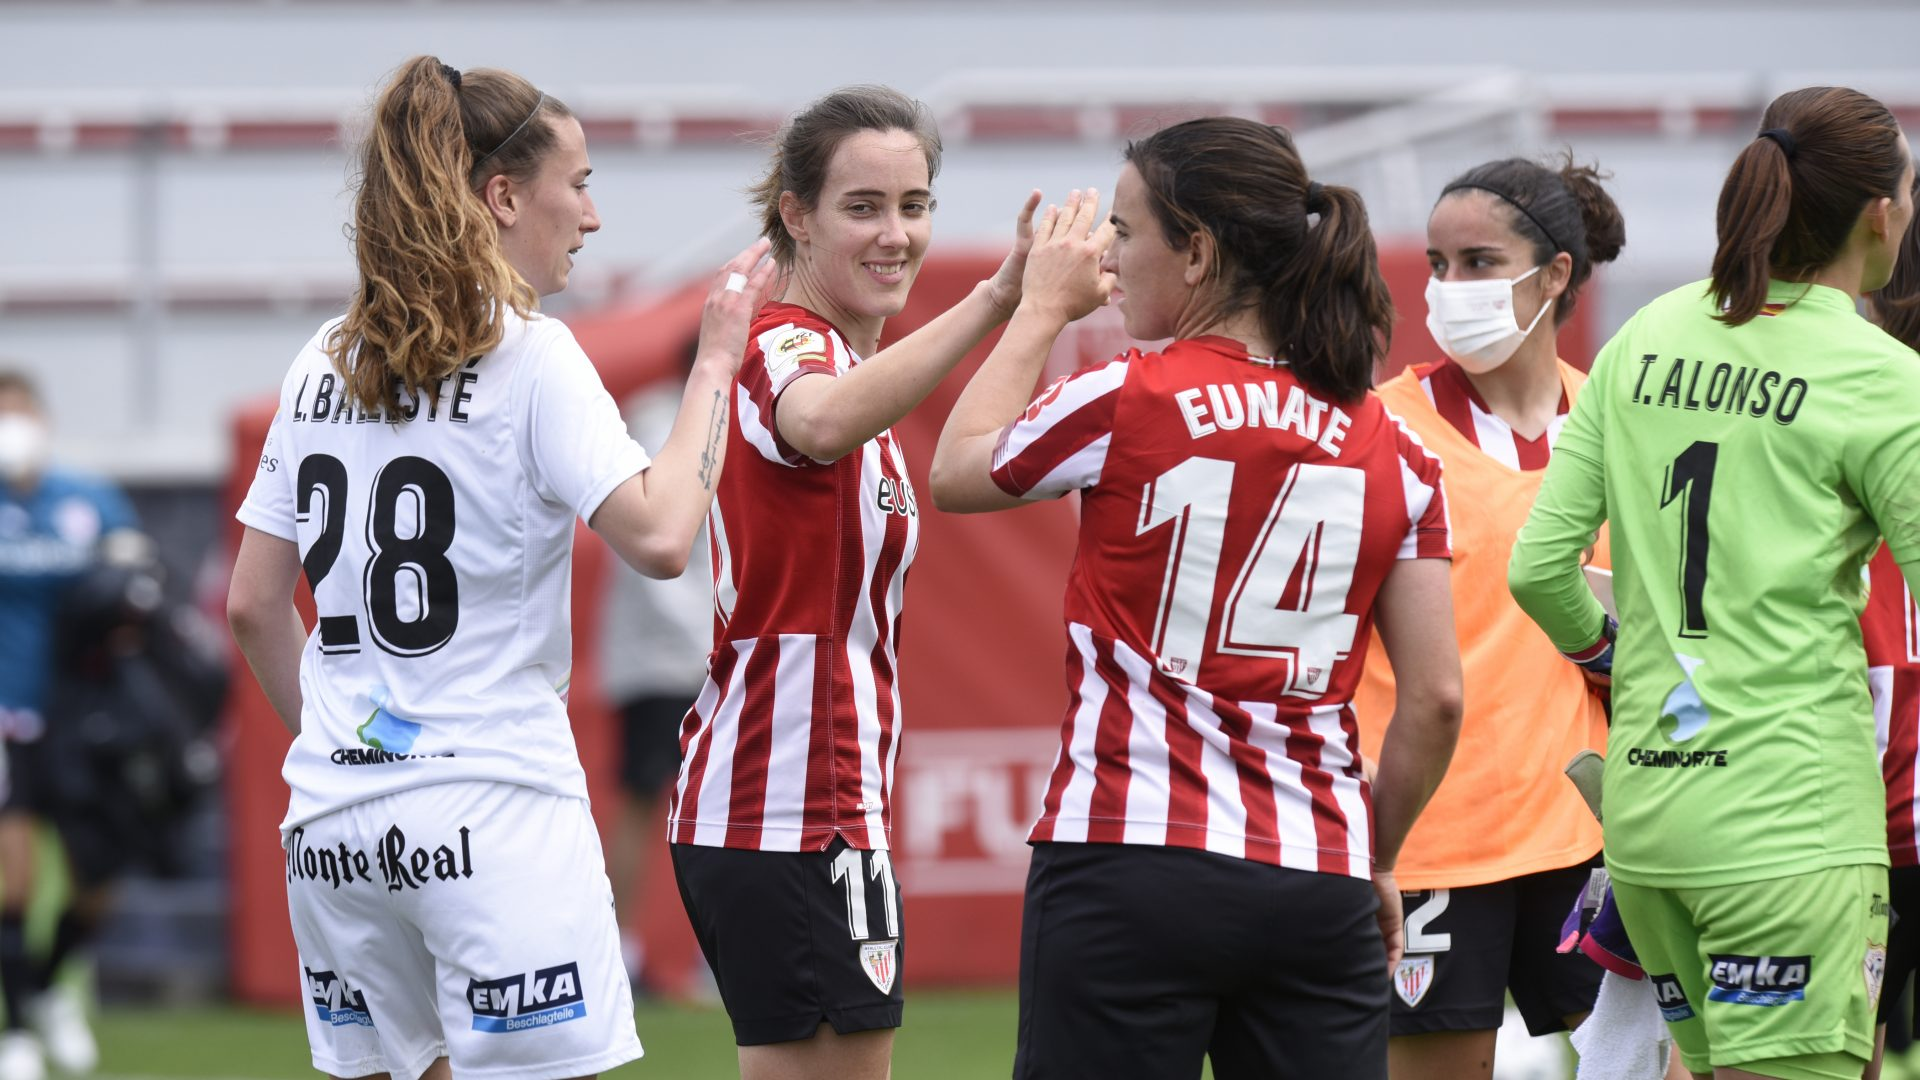 Athletic Club – EDF Logroño | M27 Primera Iberdrola